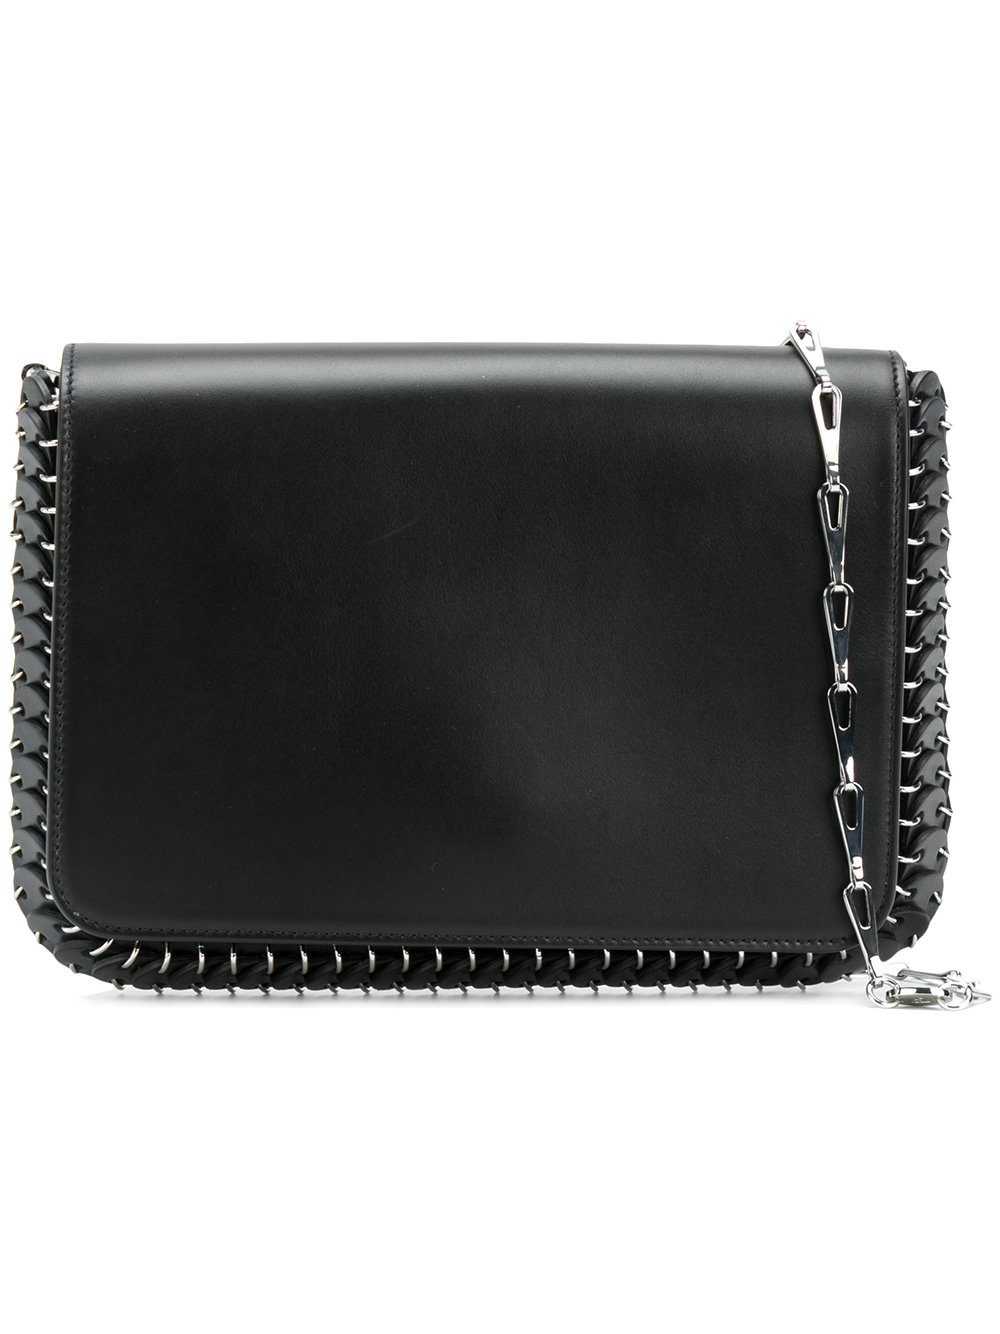 PACO RABANNE FLAP BAG SMALL